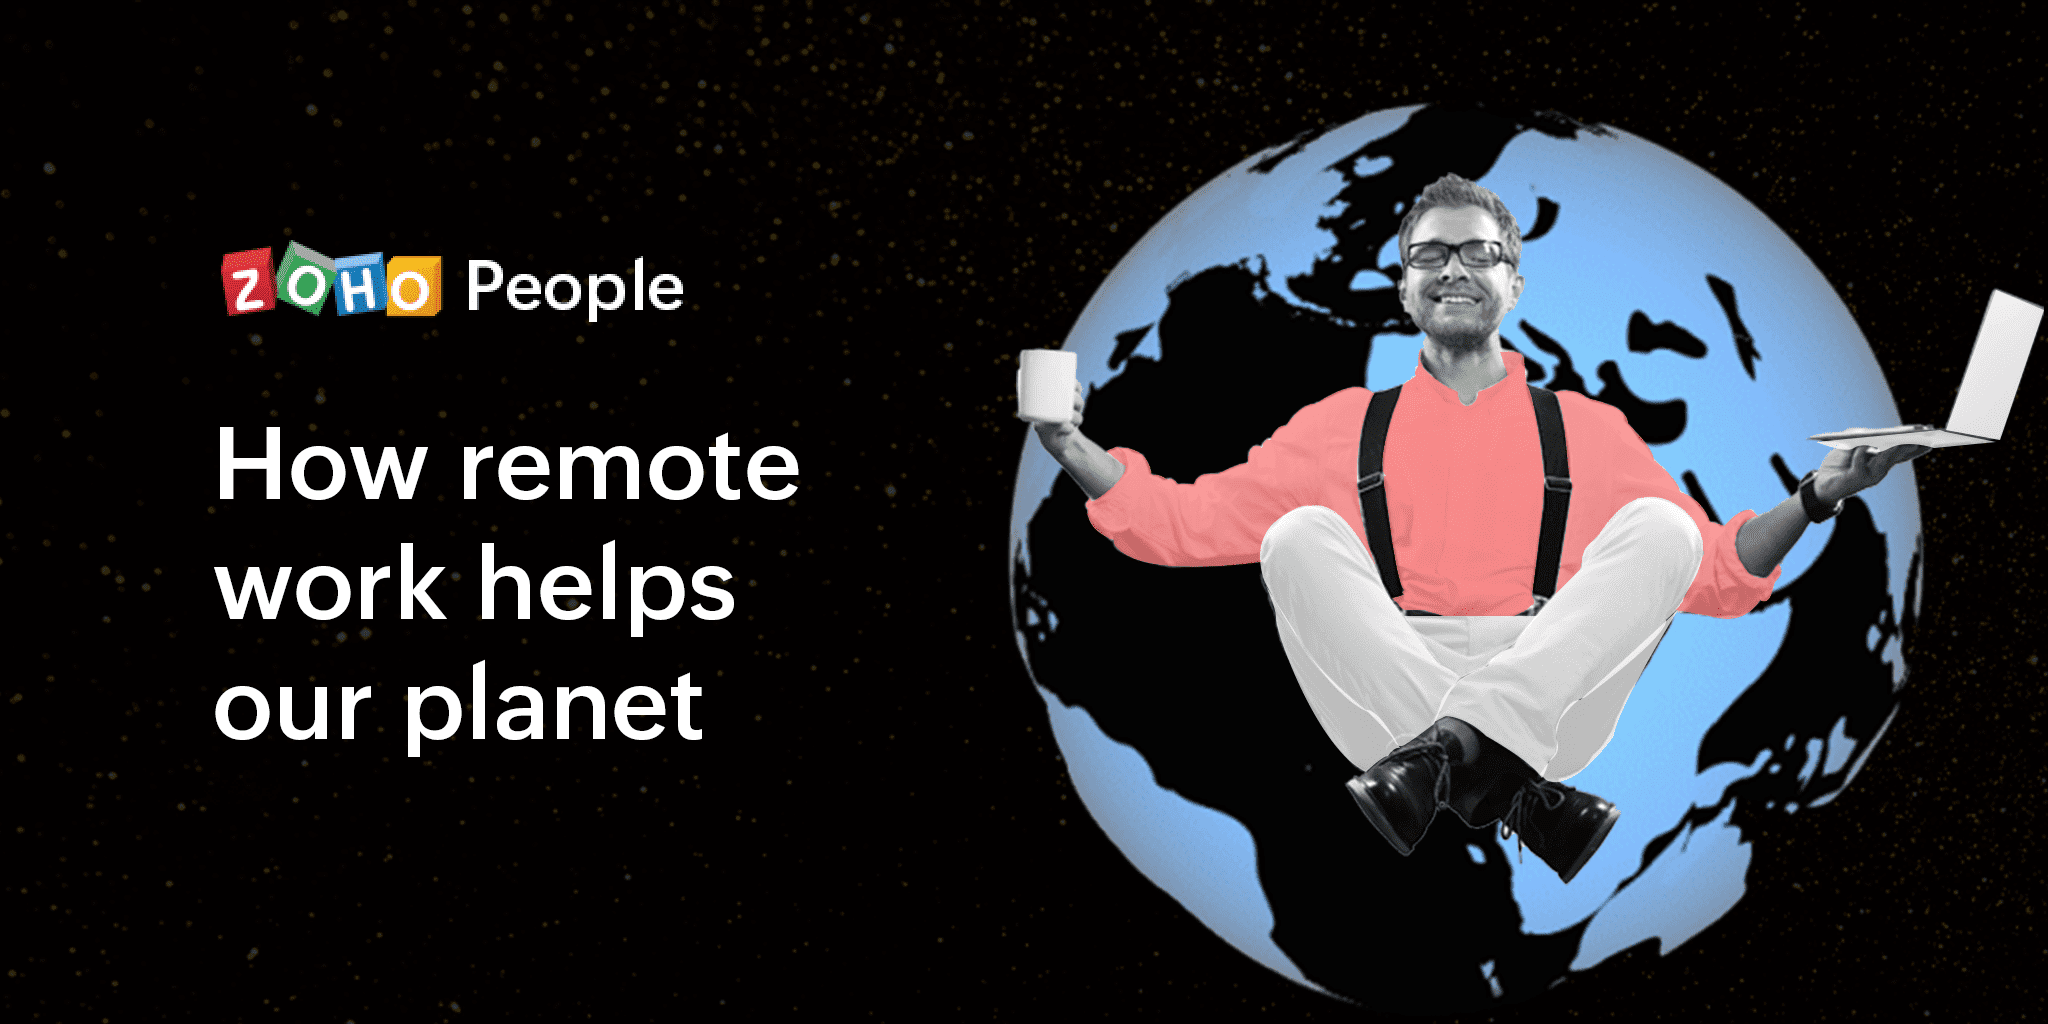 How Remote work helps our planet